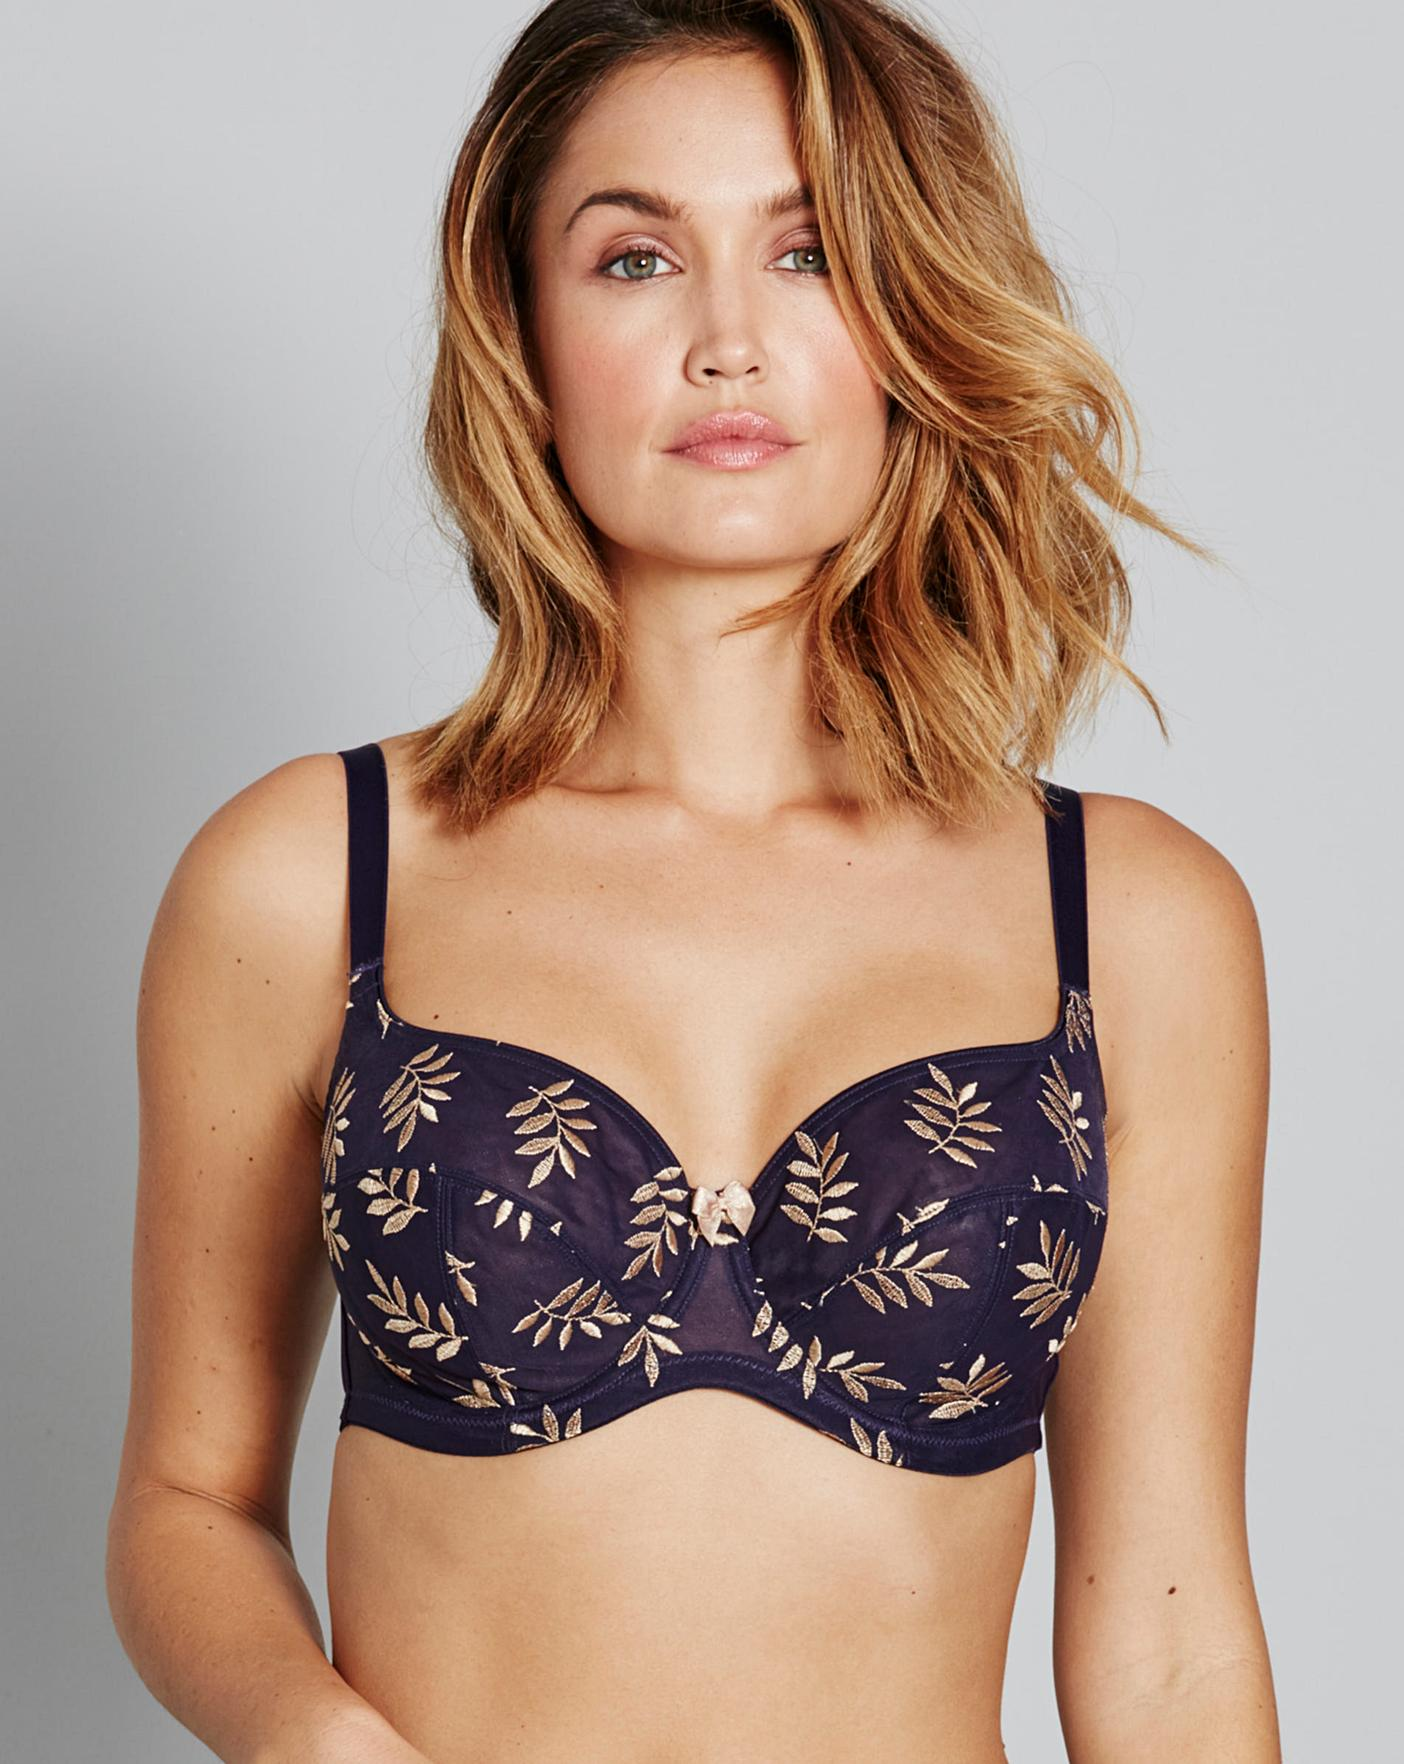 d32f2a72d49af Panache Tango II Navy/Gold Balcony Bra | Simply Be